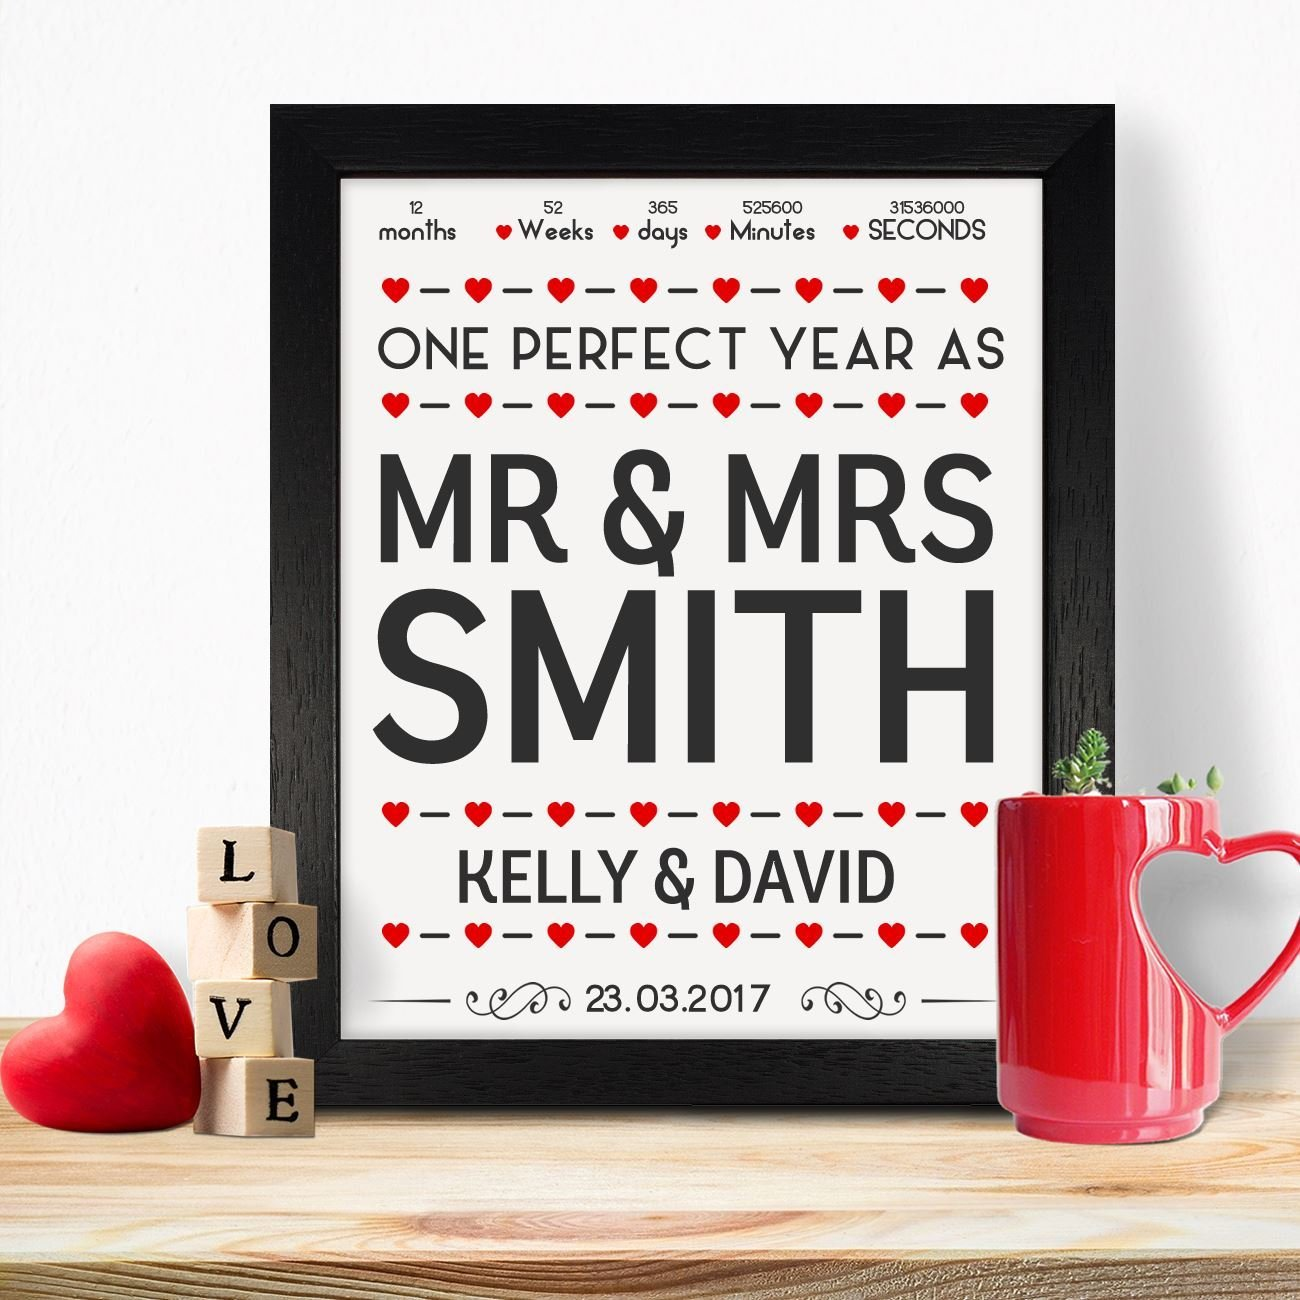 Personalised Presents Gifts For Him Her Husband Wife Couples Boyfriend Girlfriend First Ruby Wedding Anniversary Valentines Day Christmas Xmas Mr And Mrs